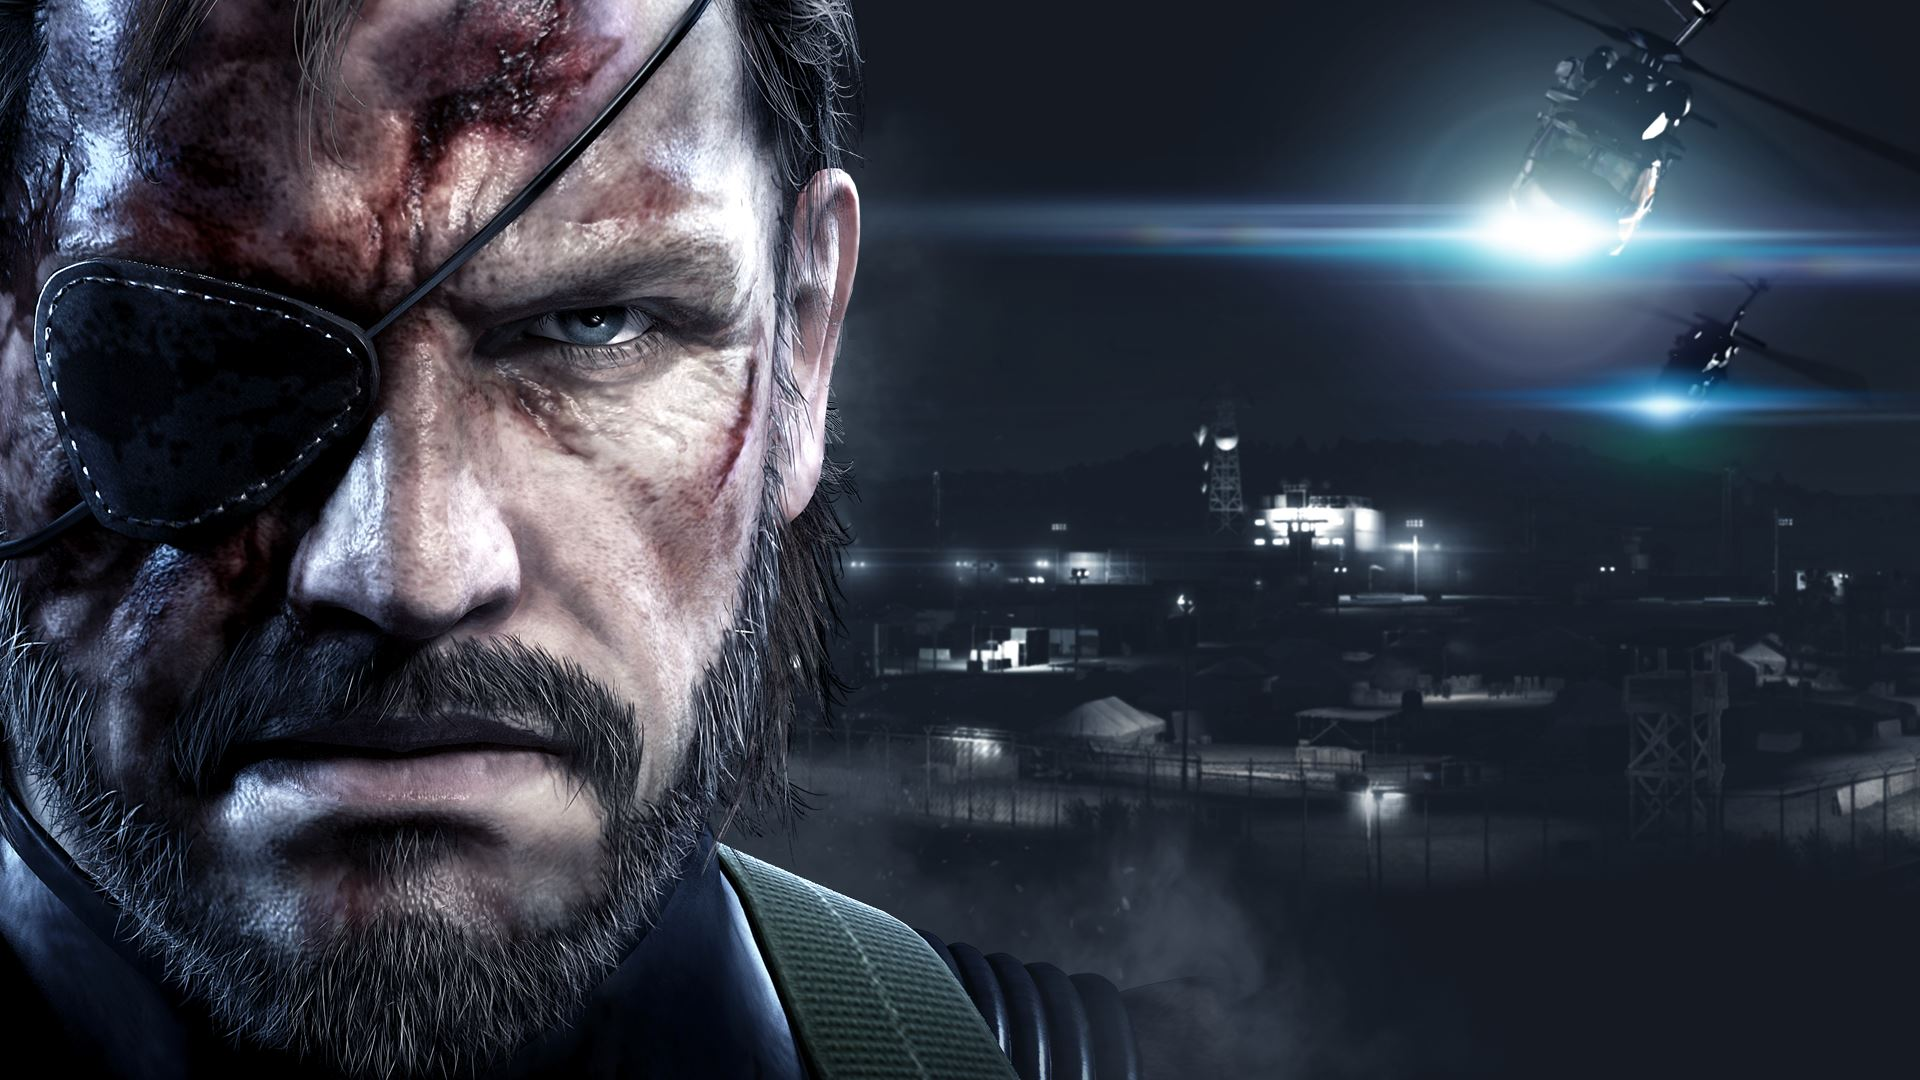 Metal Gear Solid V Definitive Edition For Consoles Leaks Online image 4